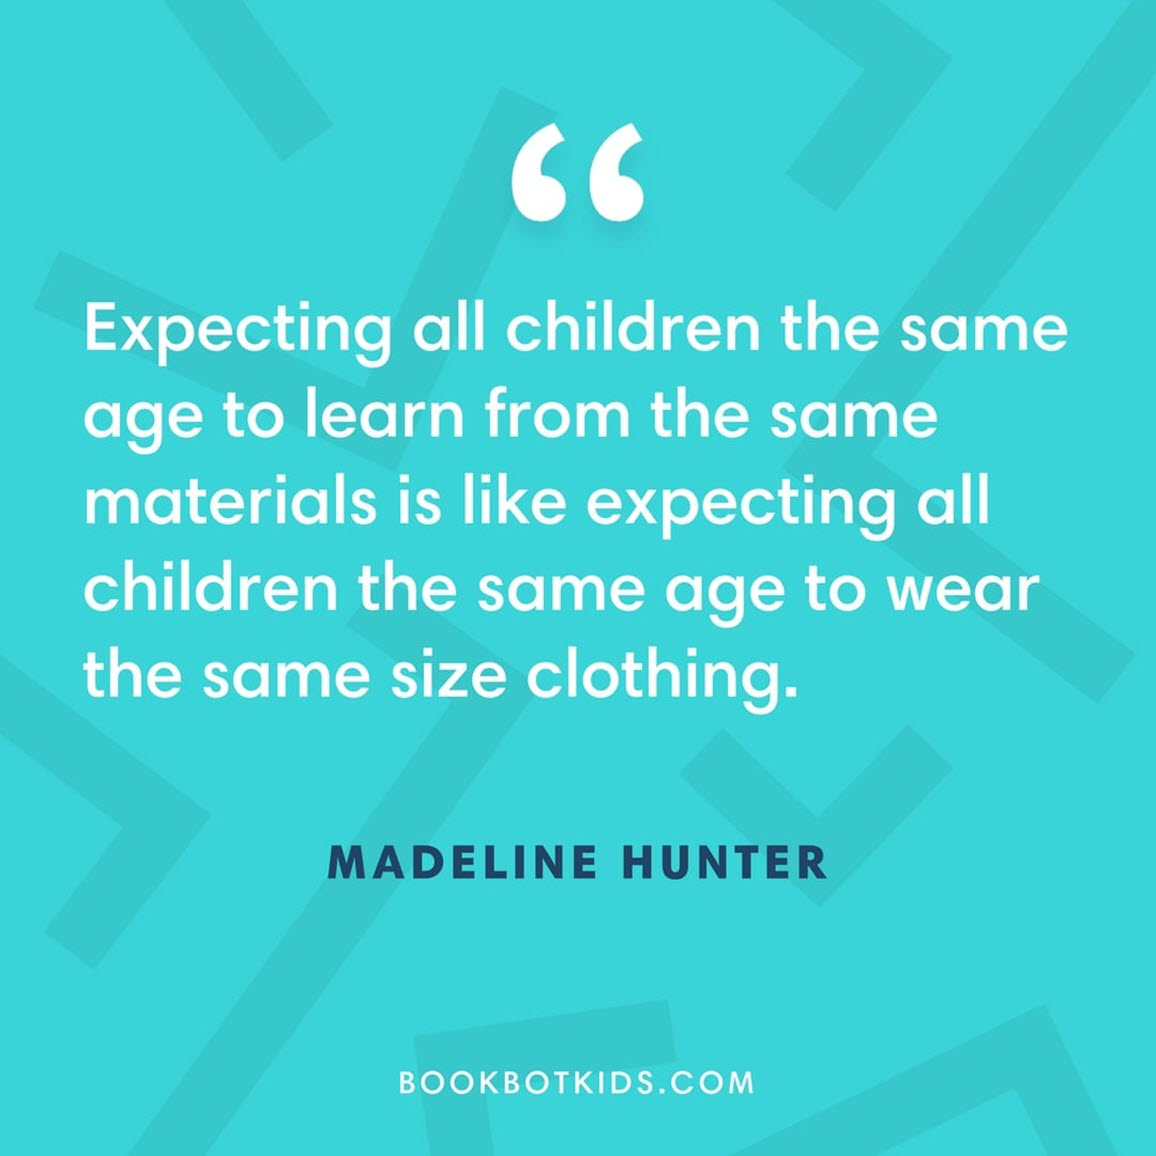 Expecting all children the same age to learn from the same materials is like expecting all children the same age to wear the same size clothing. – Madeline Hunter